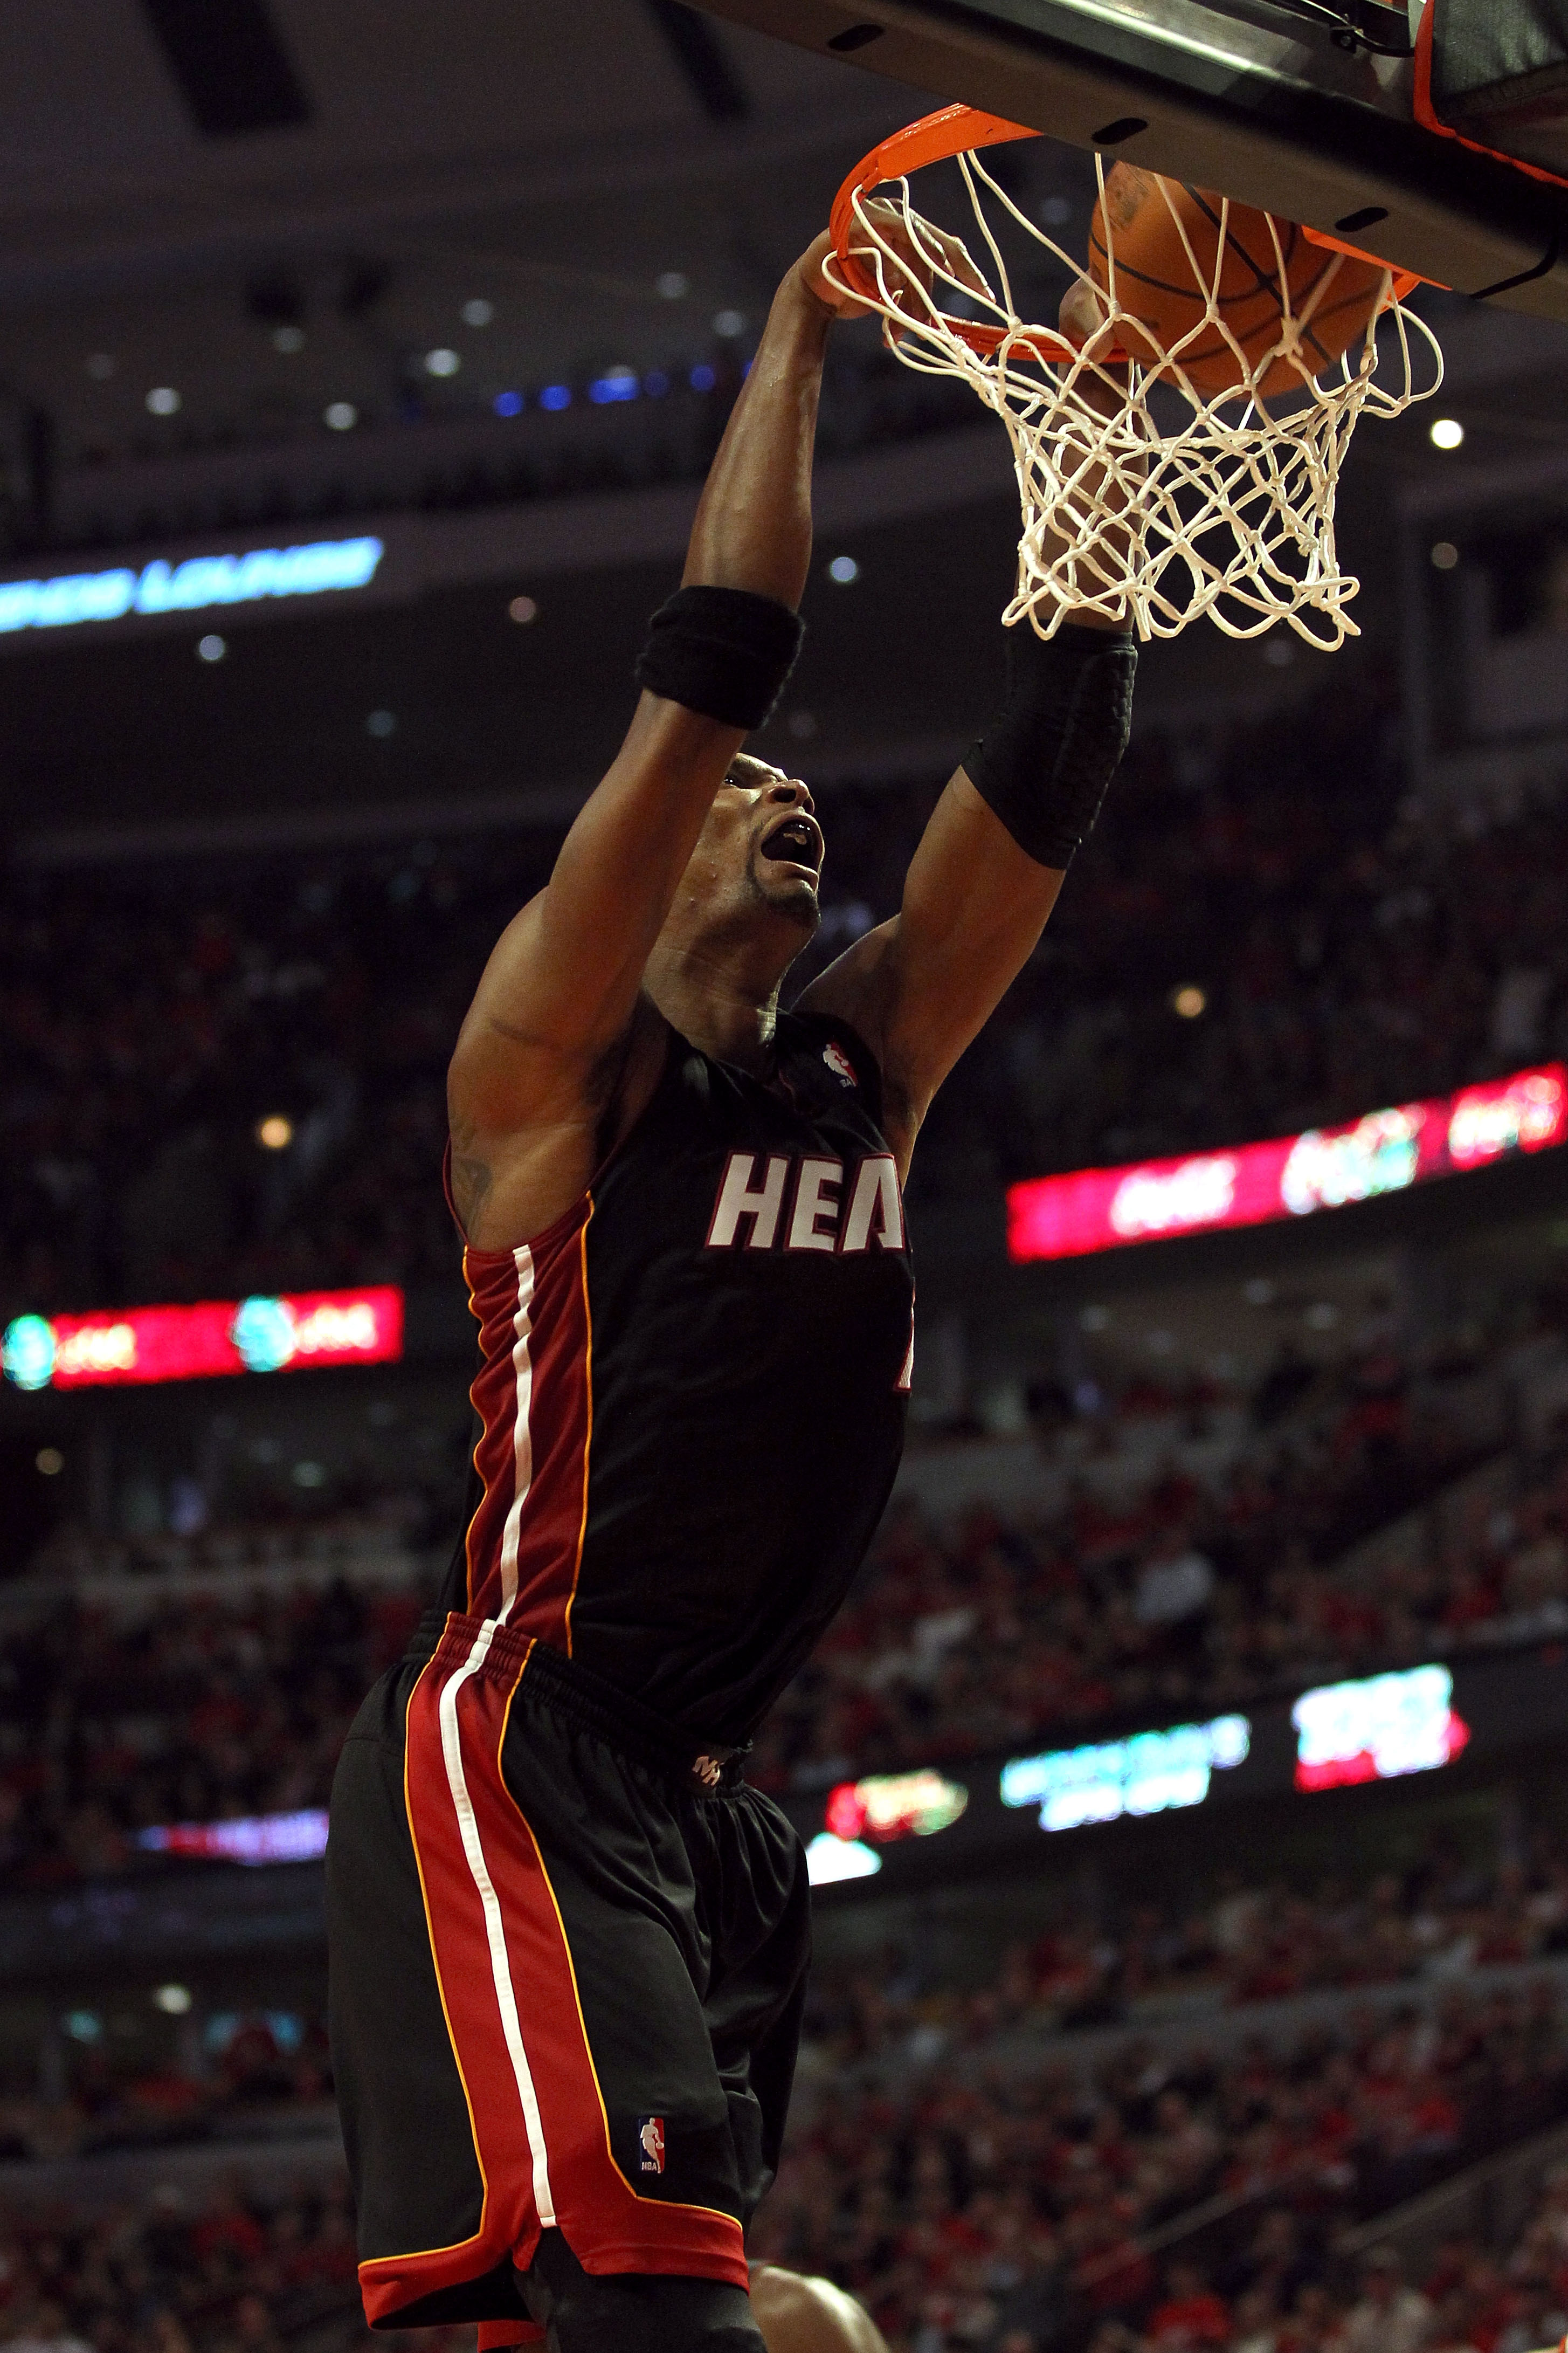 CHICAGO, IL - MAY 15: Chris Bosh #1 of the Miami Heat dunks against the Chicago Bulls in Game One of the Eastern Conference Finals during the 2011 NBA Playoffs on May 15, 2011 at the United Center in Chicago, Illinois. NOTE TO USER: User expressly acknowl